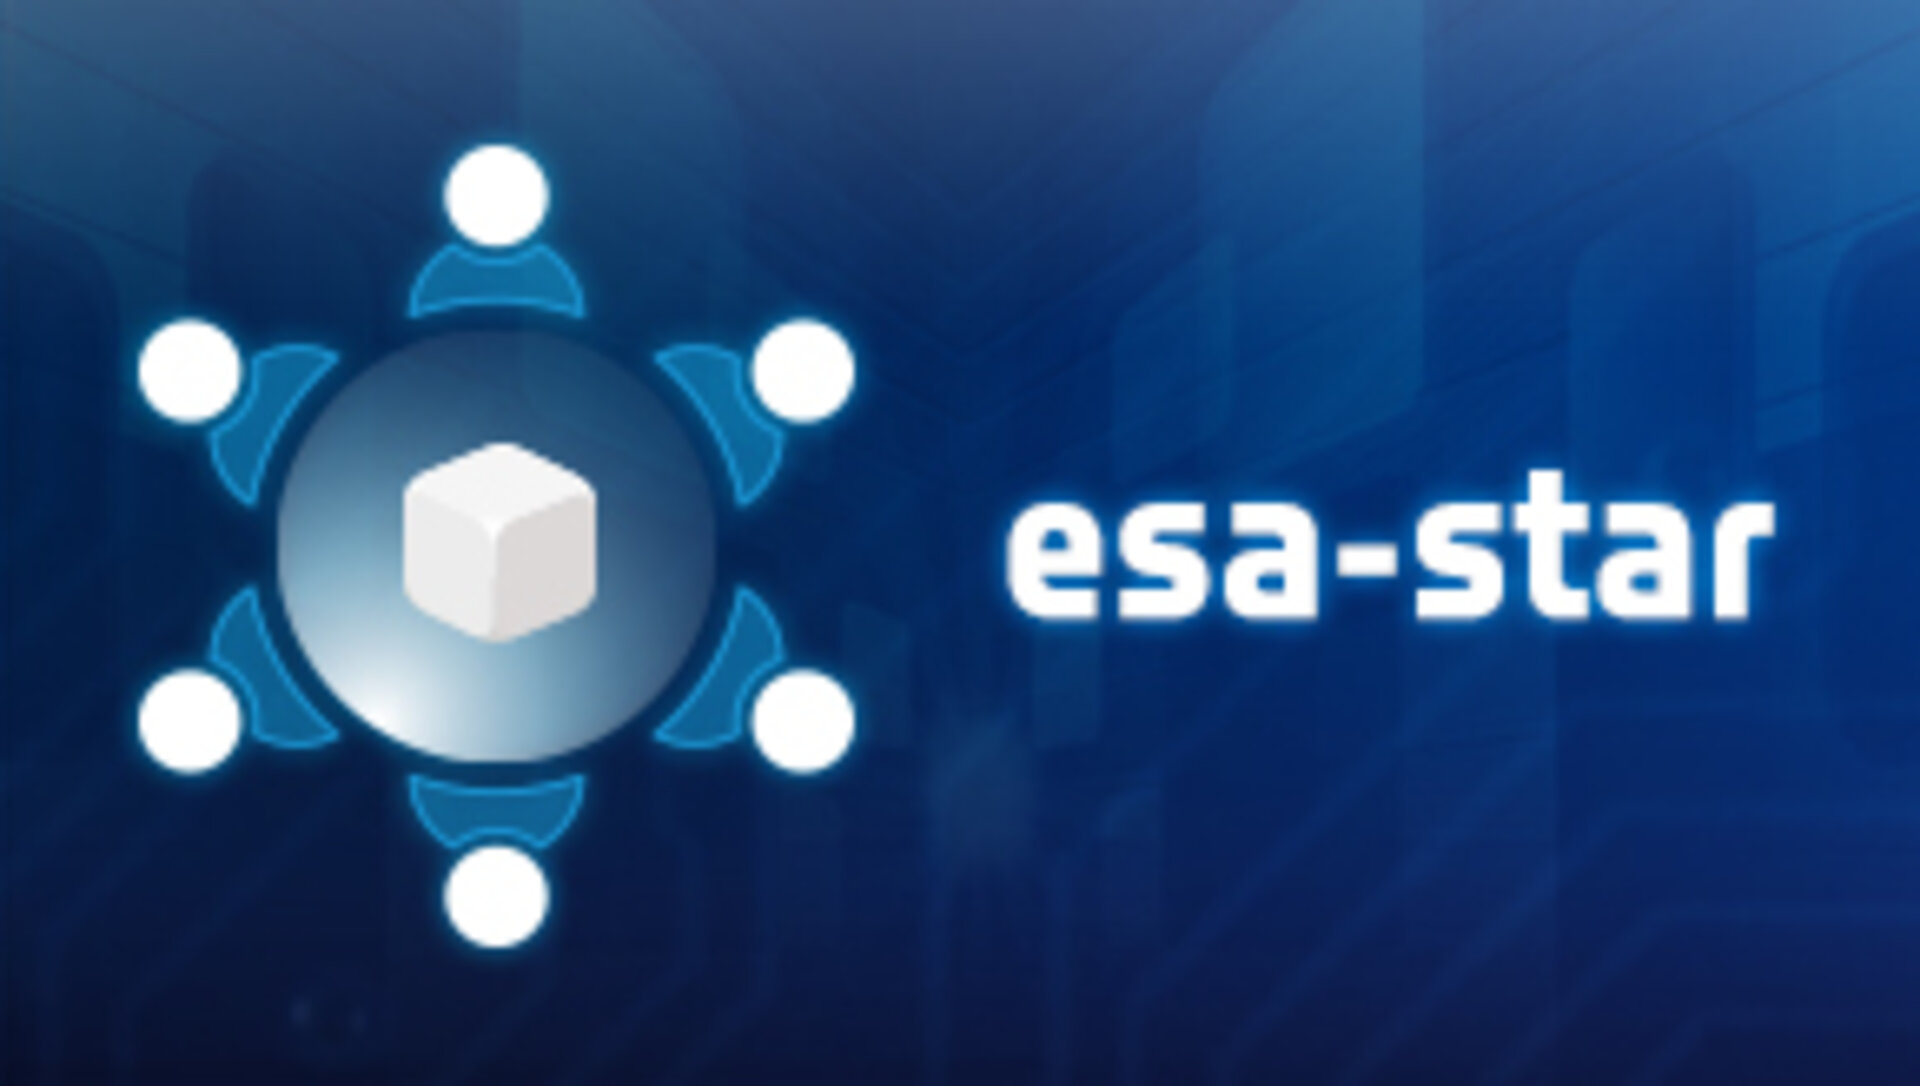 esa-star for business with ESA